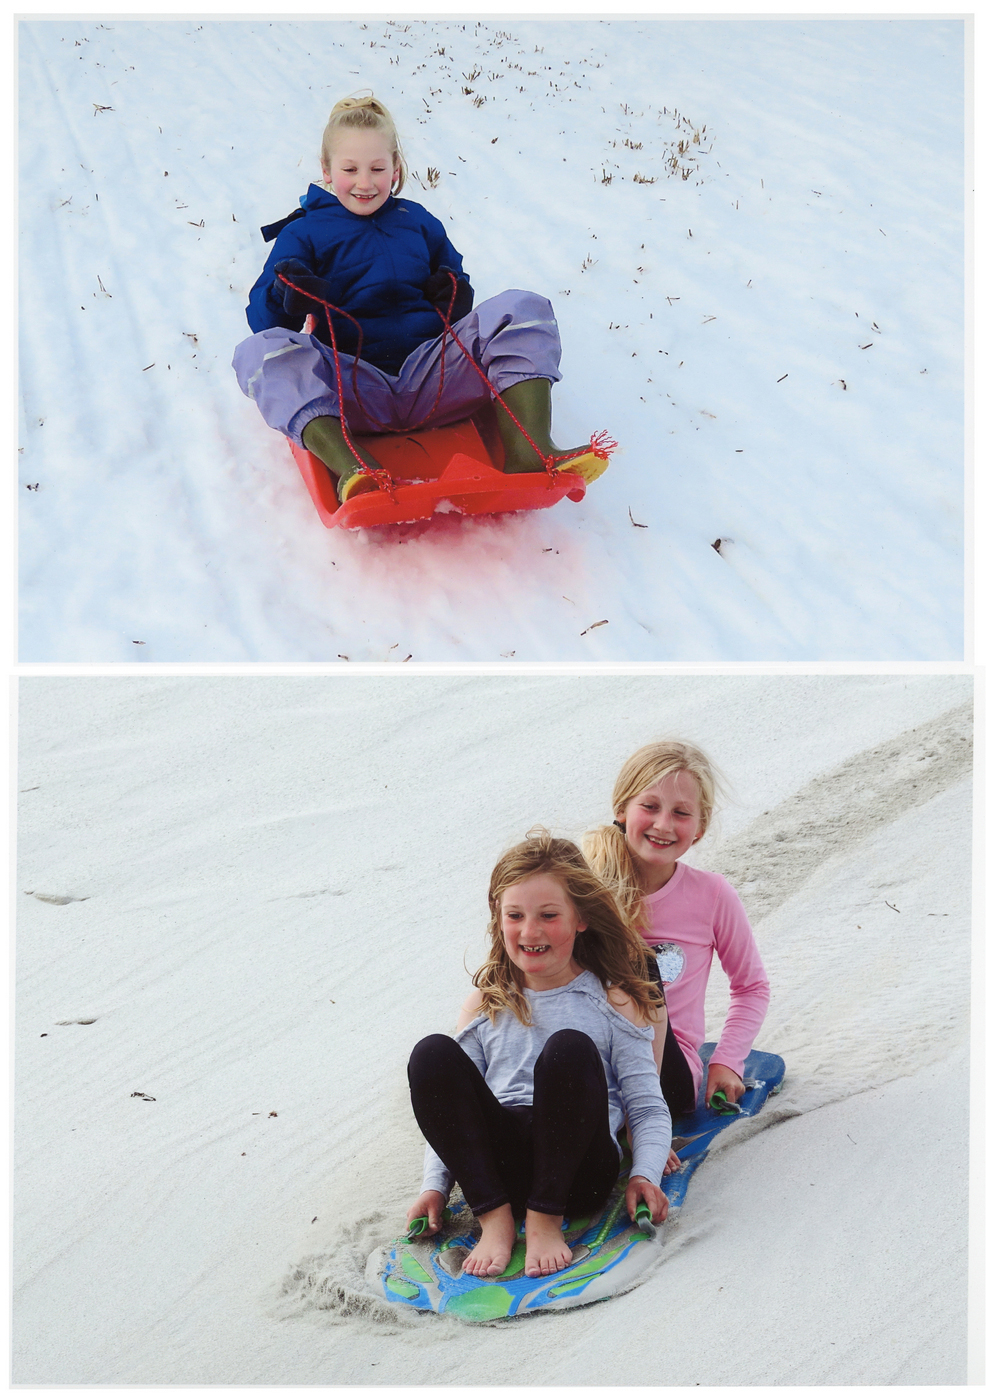 Summer Winter Sledging